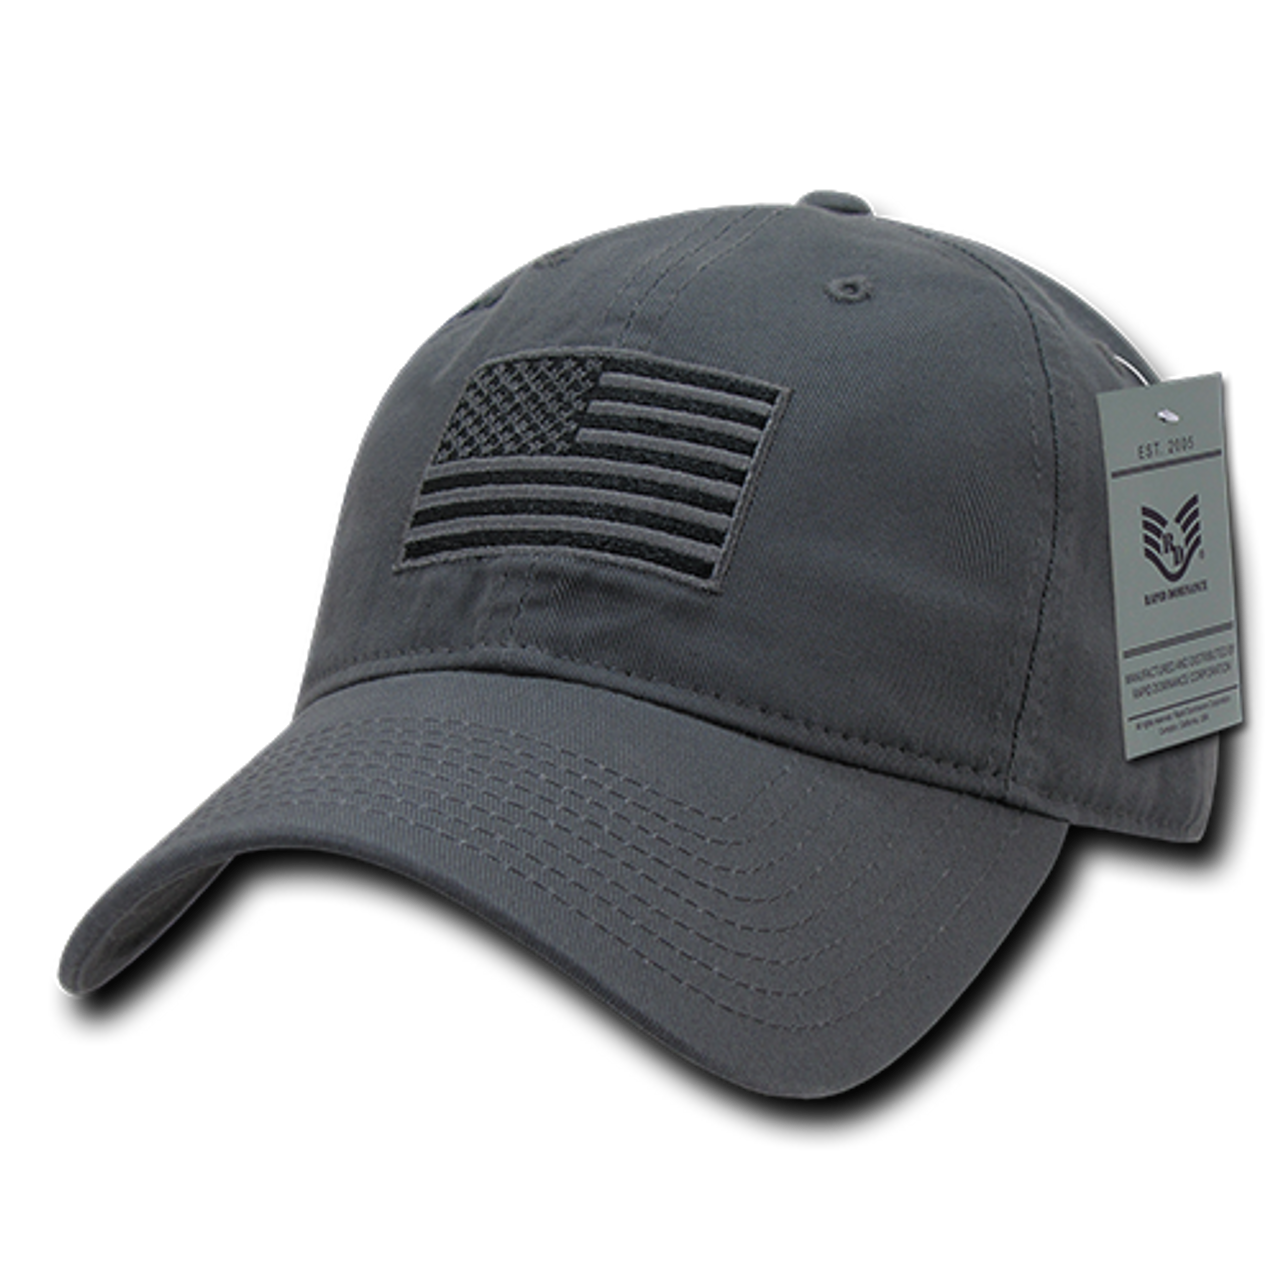 300a3900857 Tactical Cap Relaxed US Flag Dark Grey - US Military Hats